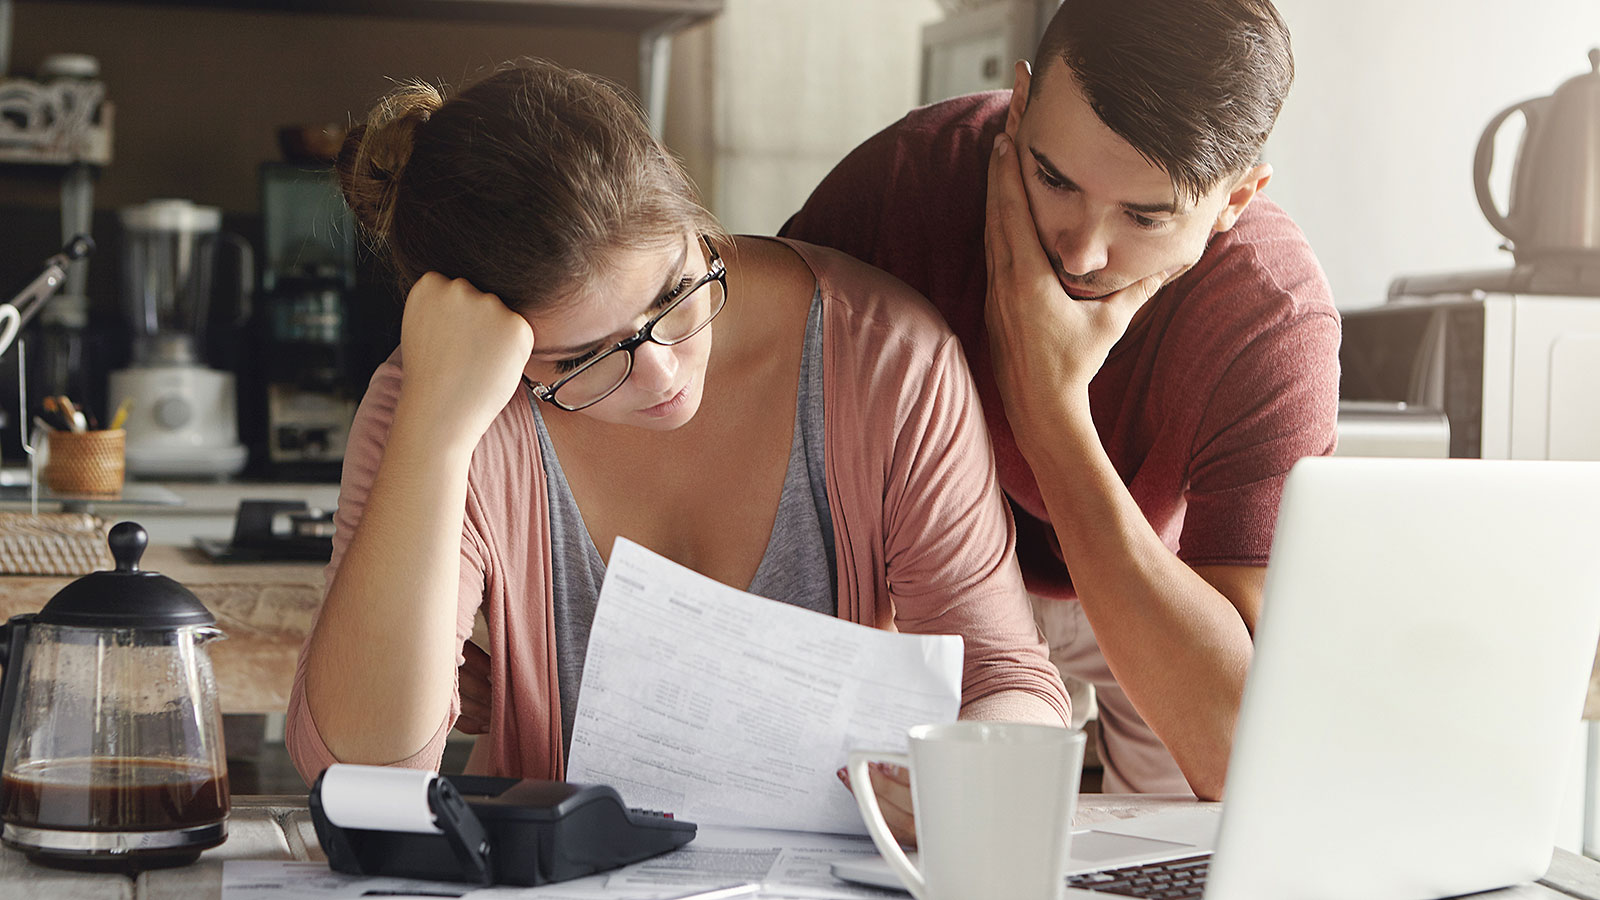 This striking percentage of couples regret combining their finances – especially the higher-earning partner